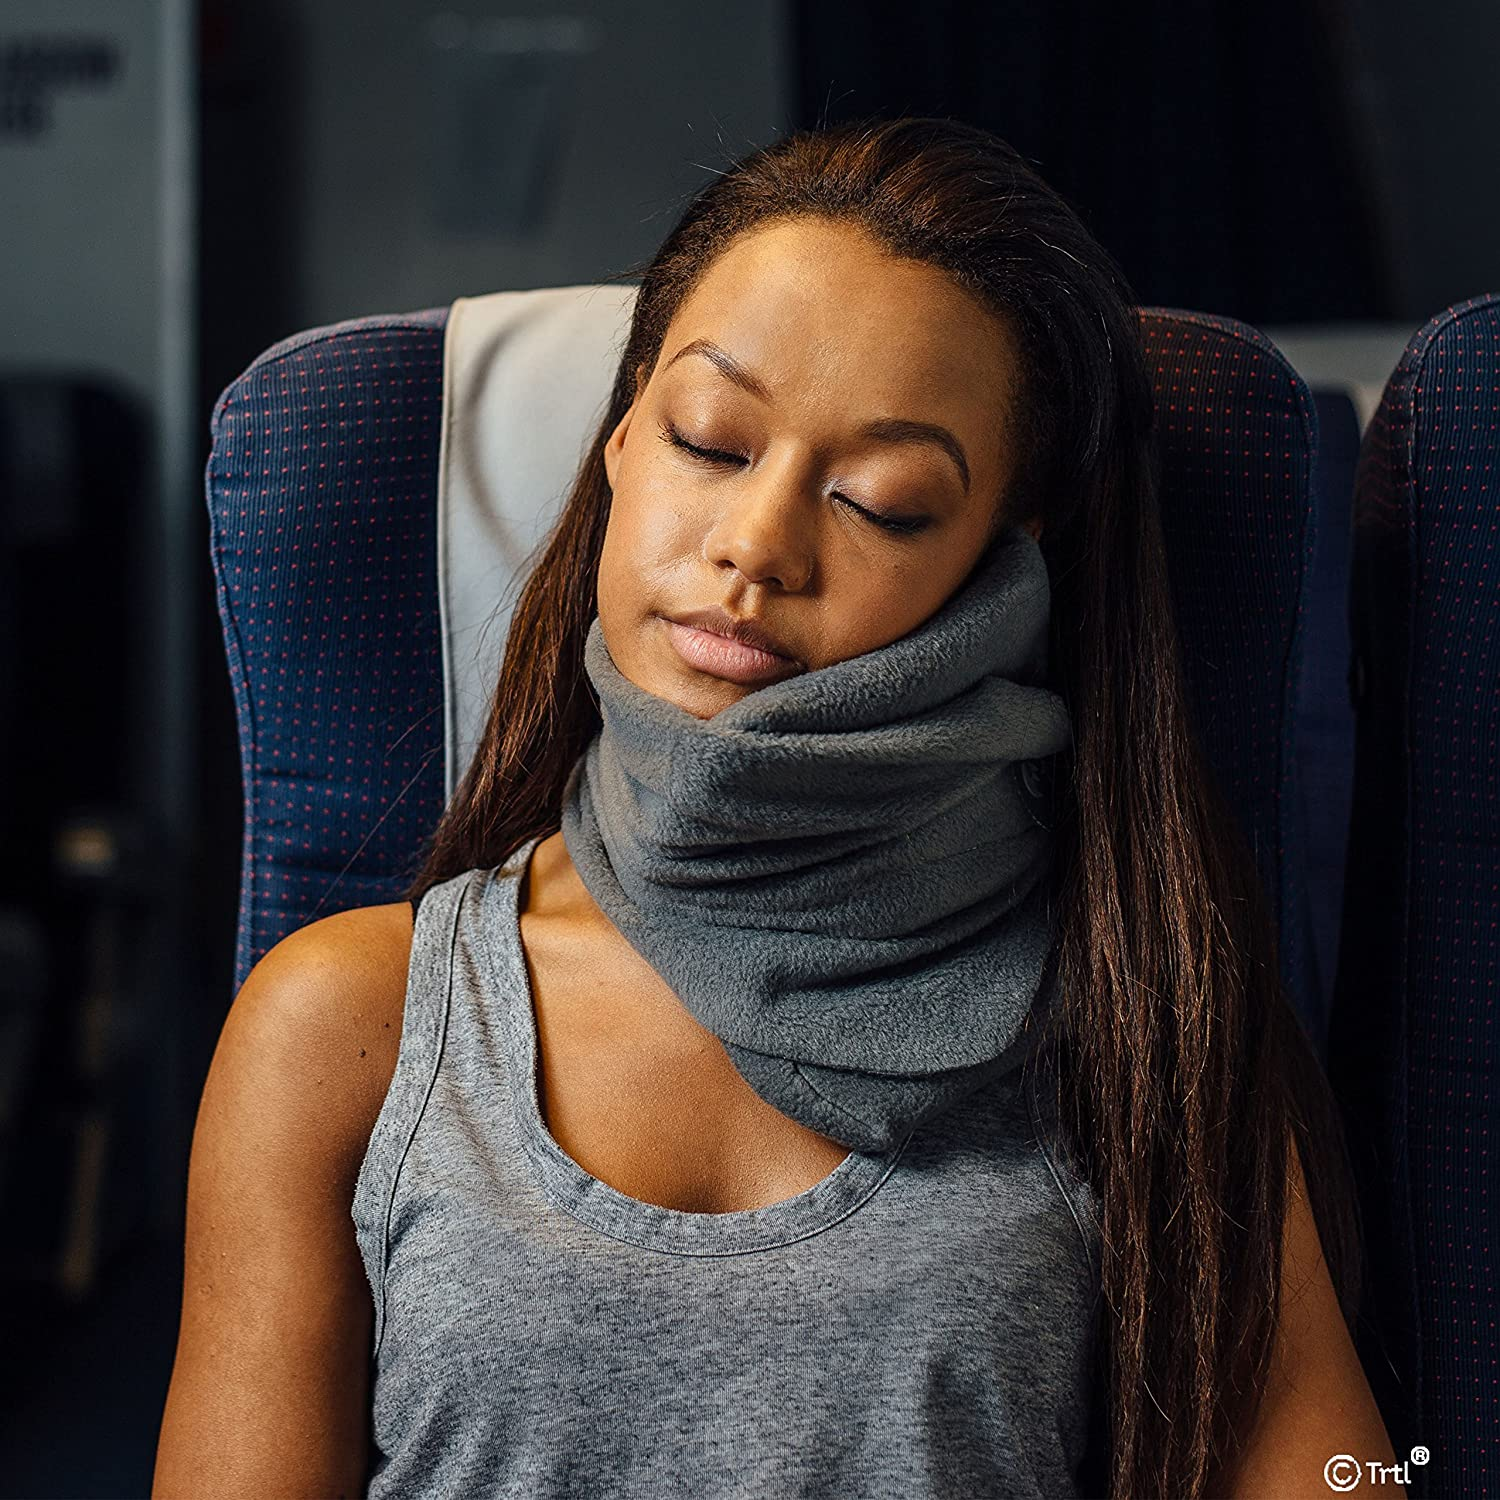 The Best Travel Pillows 2020 – FYLINA